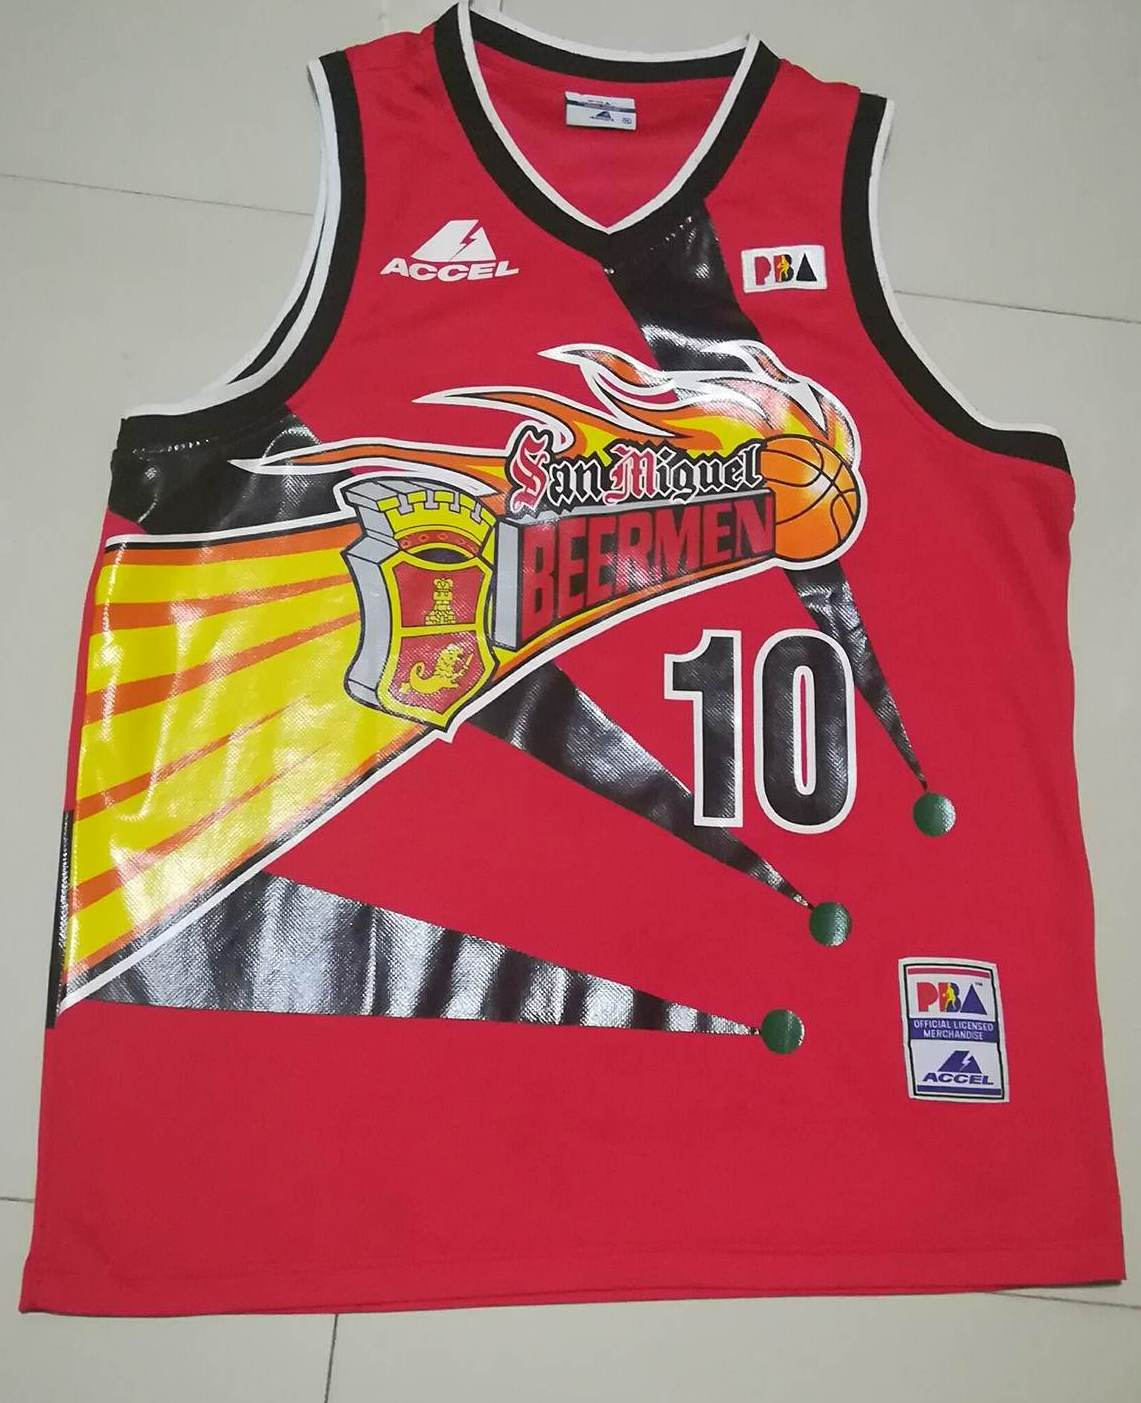 829c2b5efa4 Brand: Accel Series: PBA Collection Player: Danny